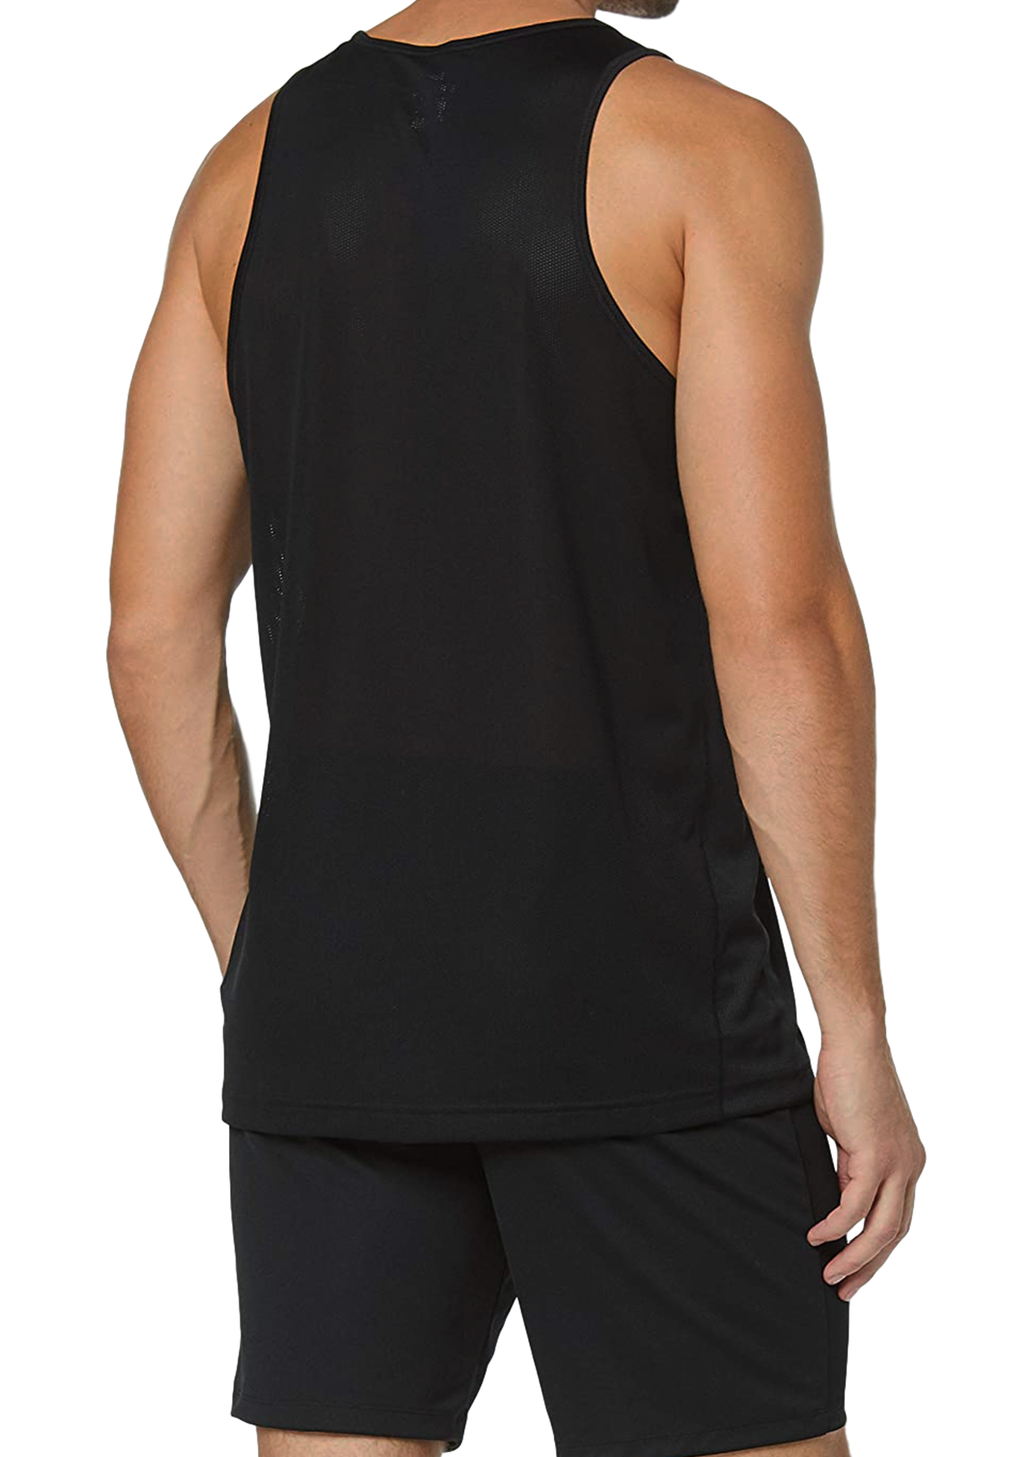 NIKE MENS DRI-FIT BREATHE RUNNING TANK BLACK <BR> AQ4939 010